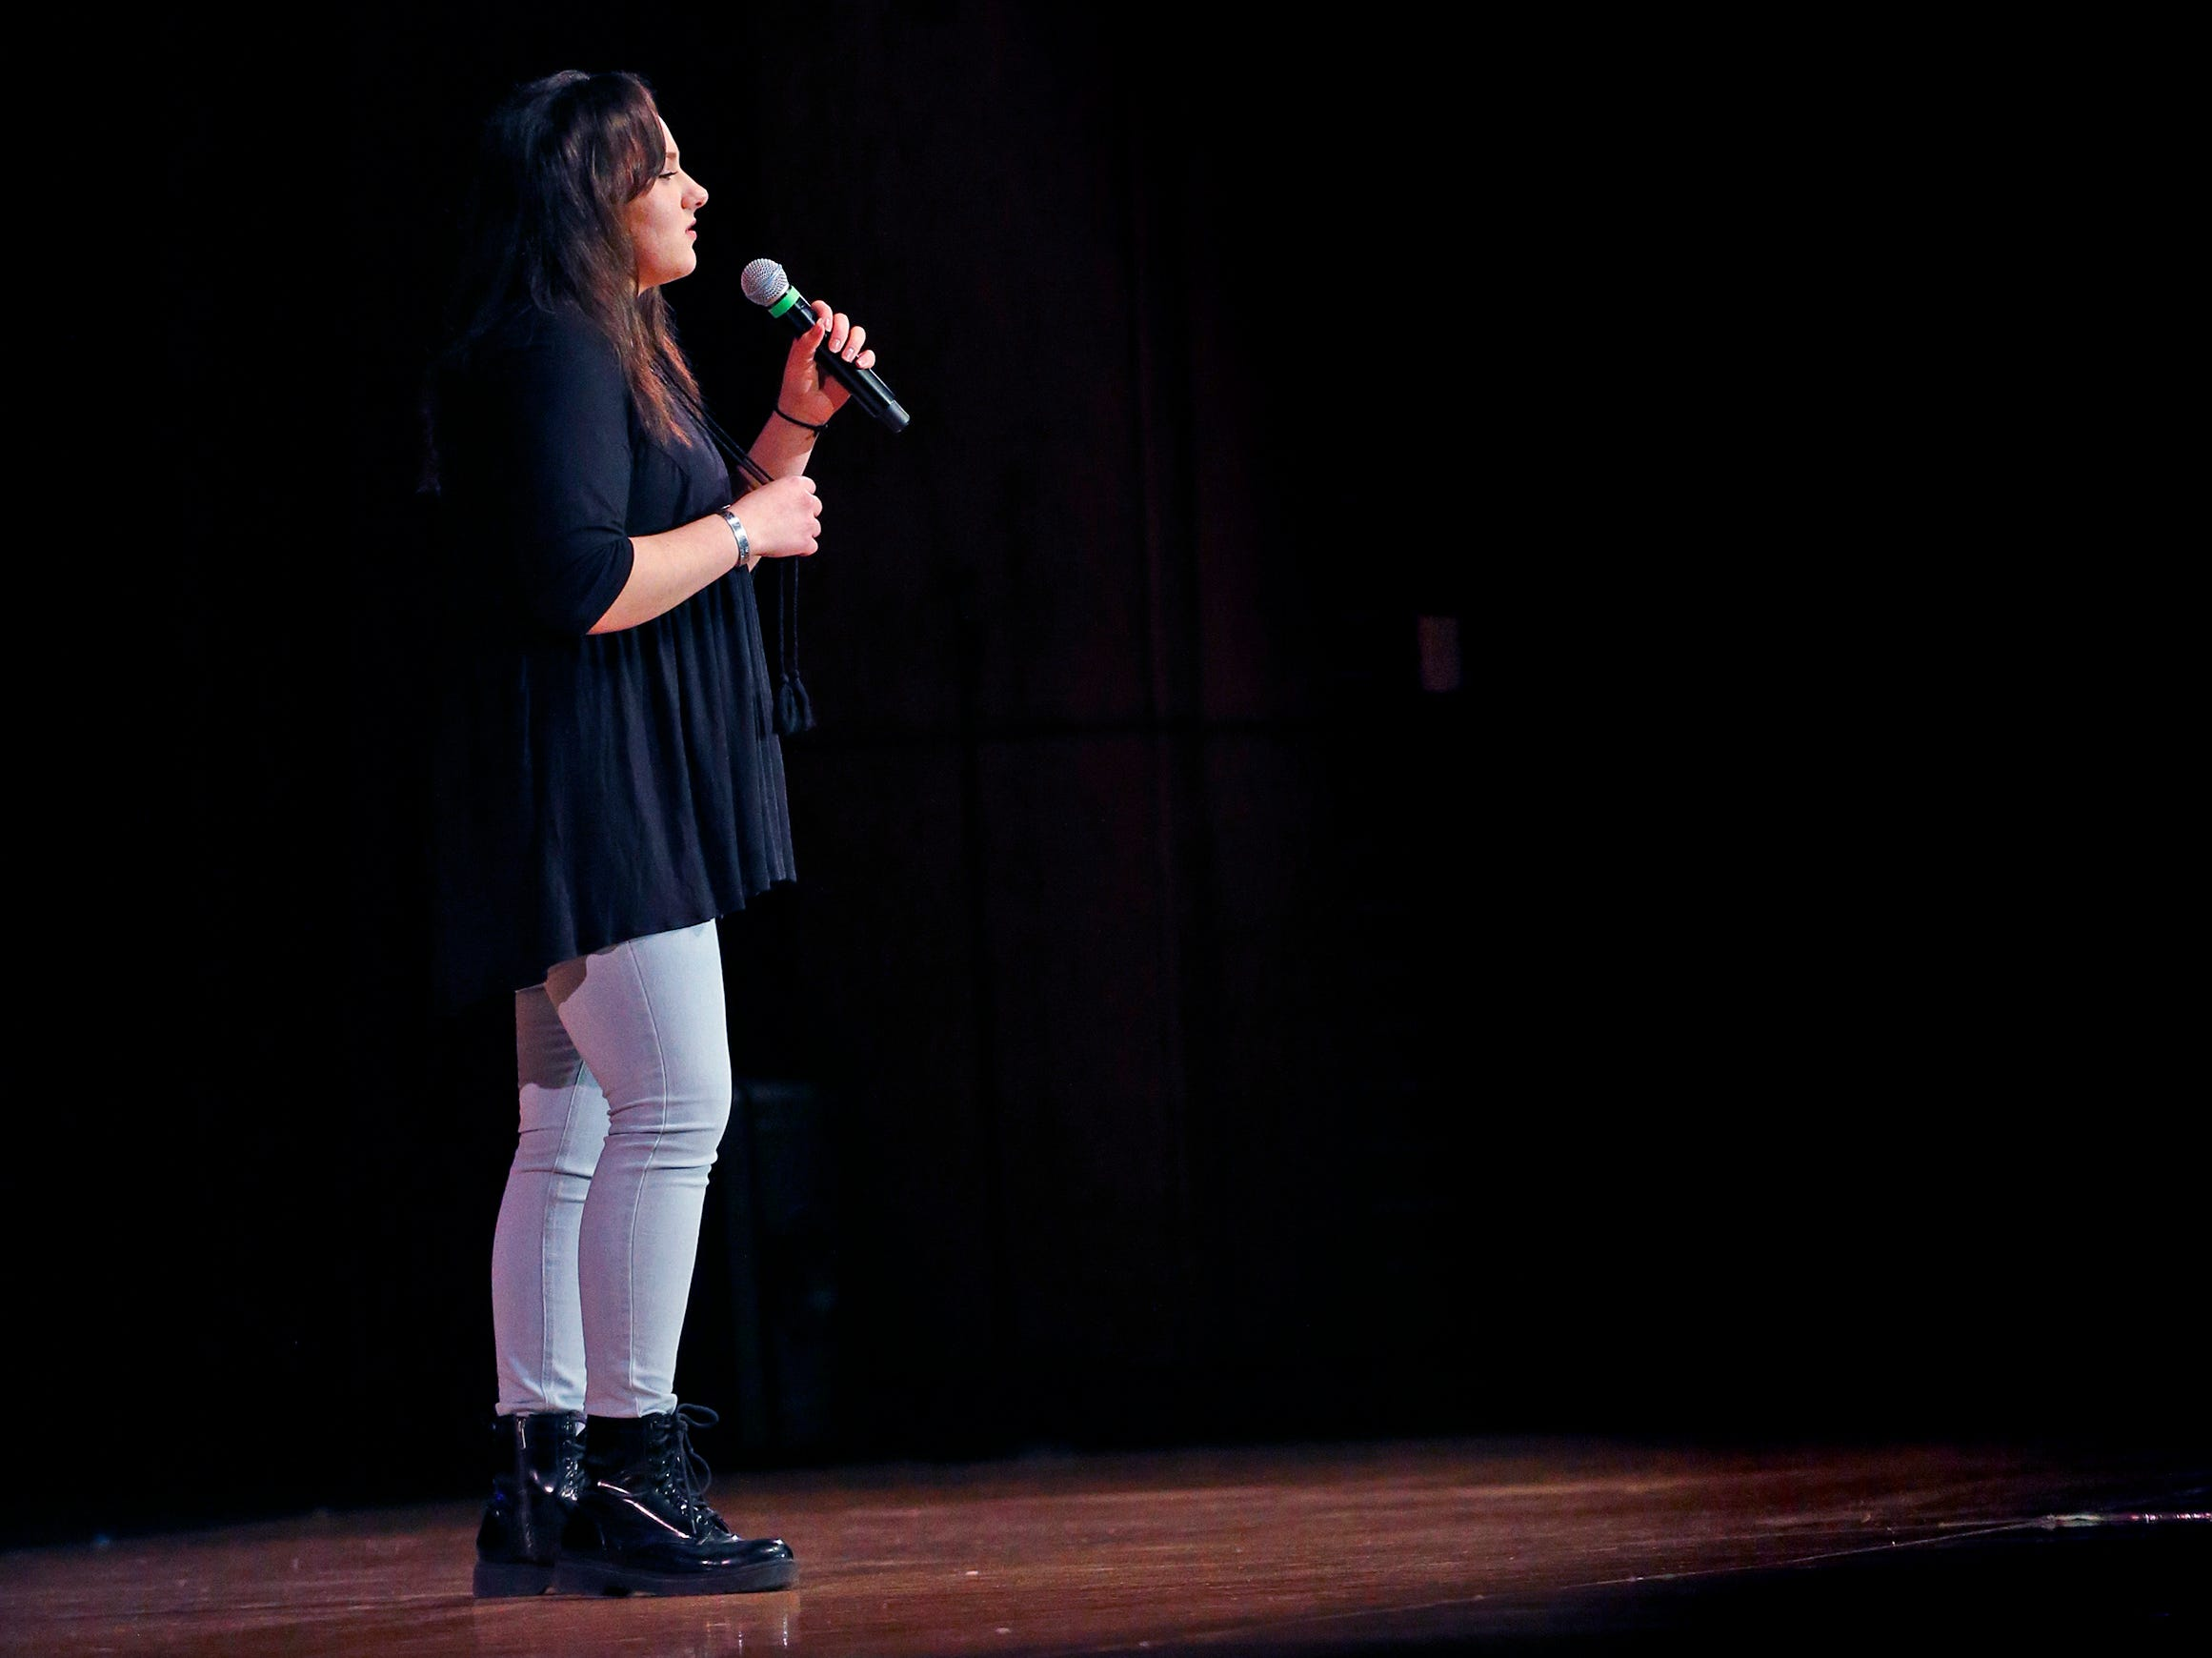 """Kailin Lambert sings """"I Don't Want To Be You Anymore"""" during the 2018 Rocket Review to benefit the South Milwaukee High School Theatre Company at the Performing Arts Center on Dec. 20."""